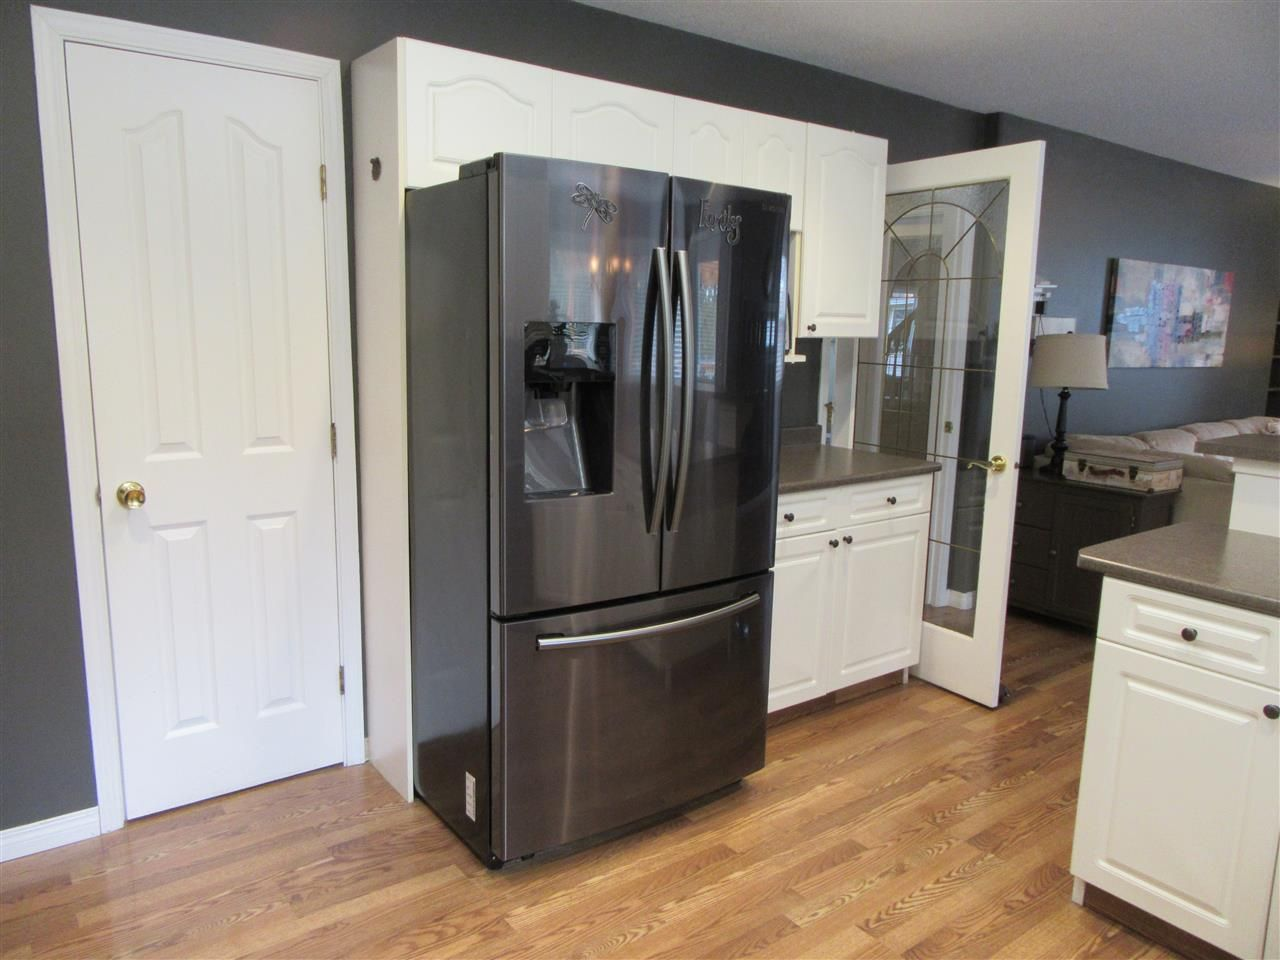 """Photo 12: Photos: 4305 FOSTER Road in Prince George: Charella/Starlane House for sale in """"CHARELLA/STARLANE"""" (PG City South (Zone 74))  : MLS®# R2499513"""